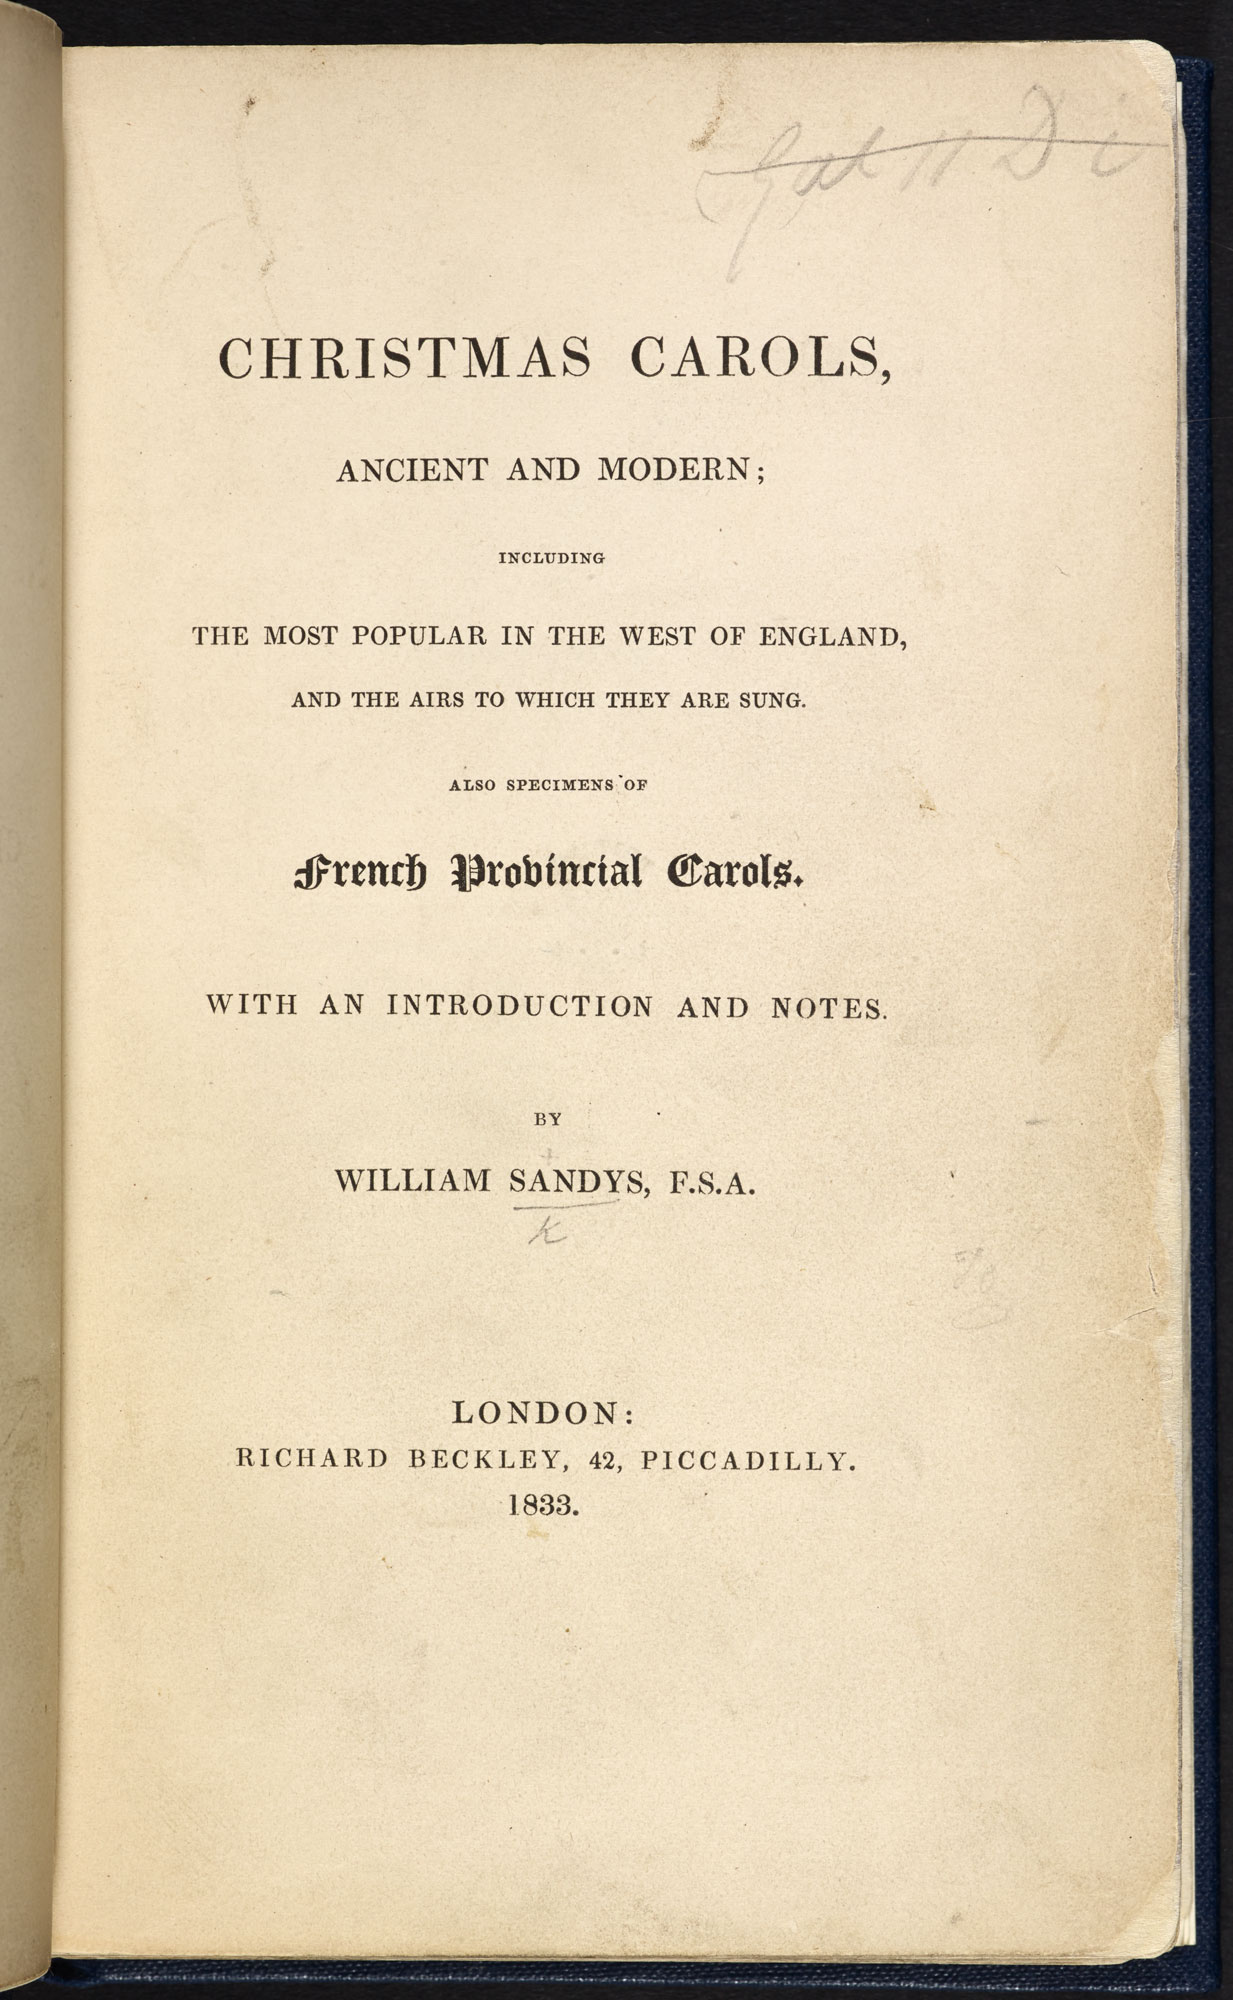 Christmas Carols, Ancient and Modern by William Sandys [page: title page]